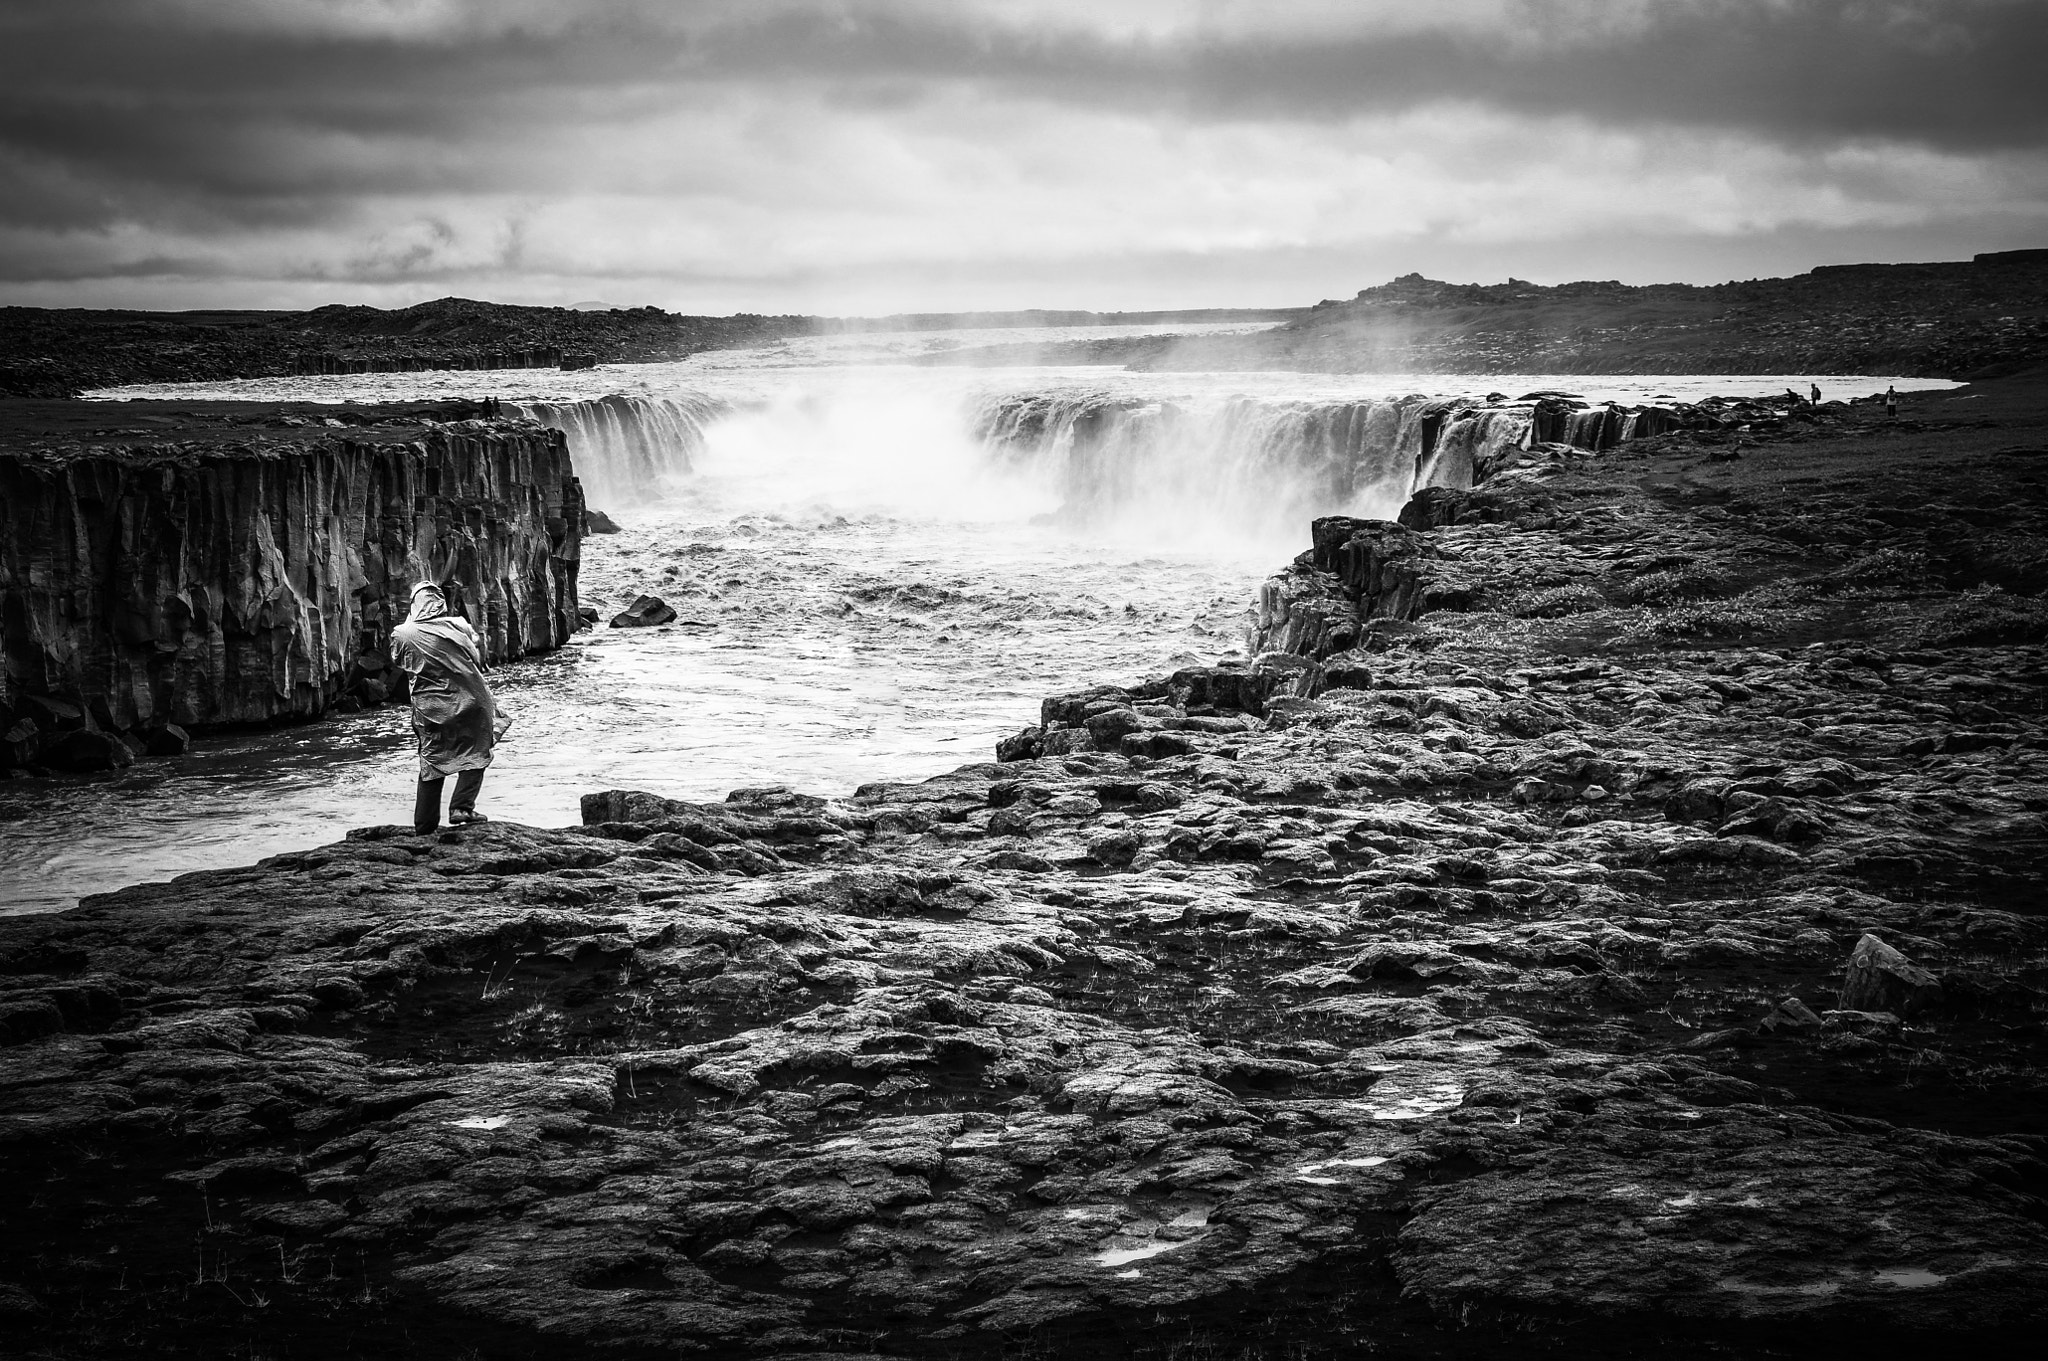 Photograph The Waterfall Selfoss by Giuseppe Carlone on 500px